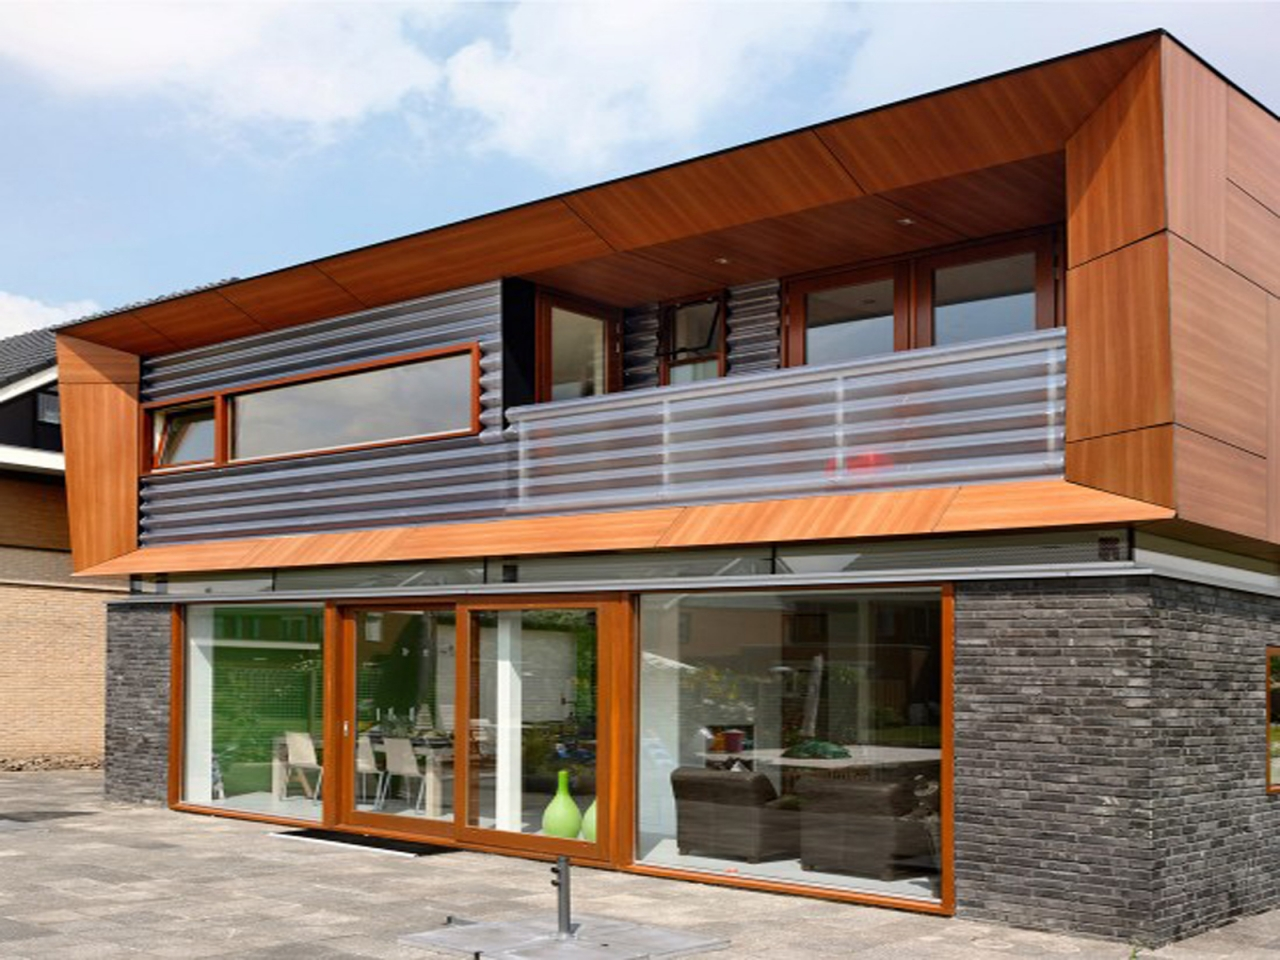 Simple modern house architectural designs modern - Modern architectural designs floor plans ...